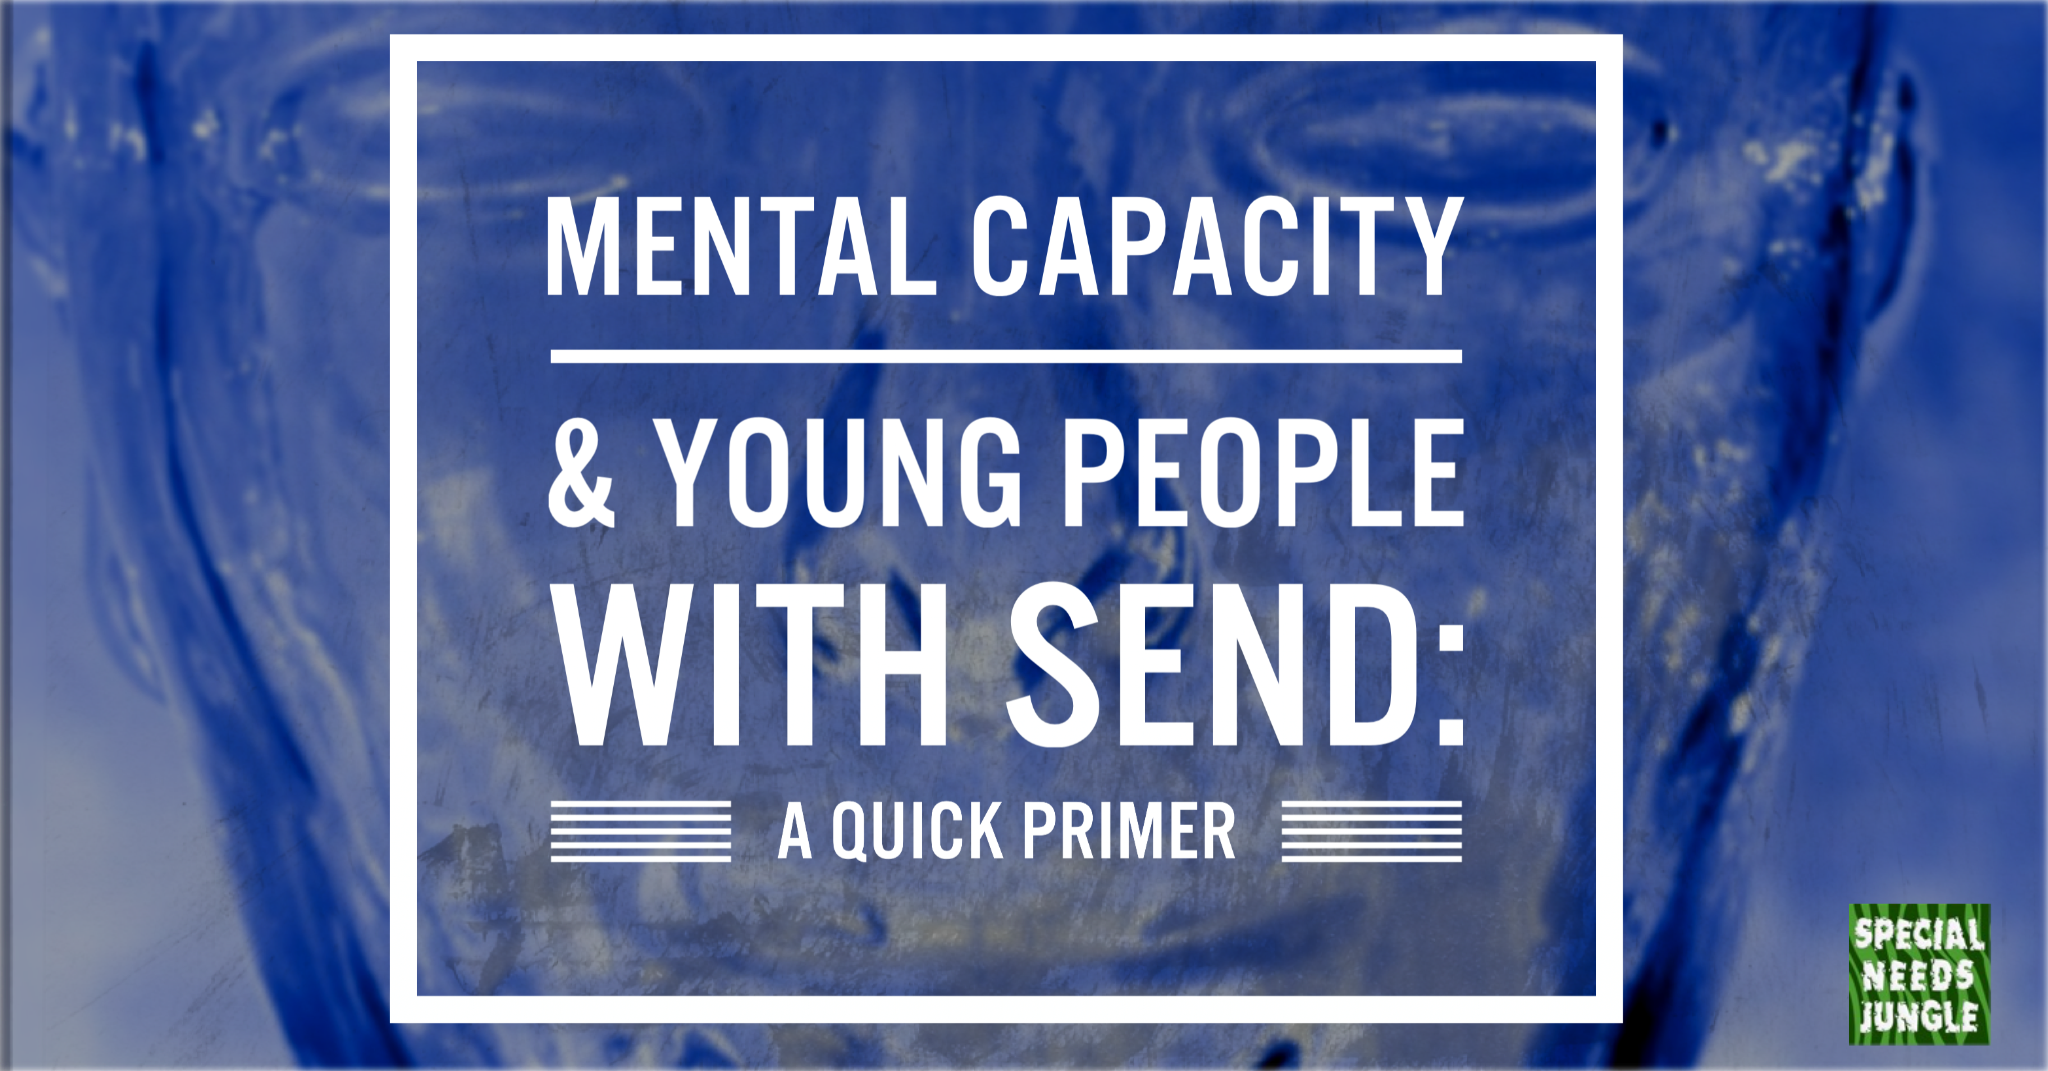 Mental Capacity and young people with SEND: A quick primer